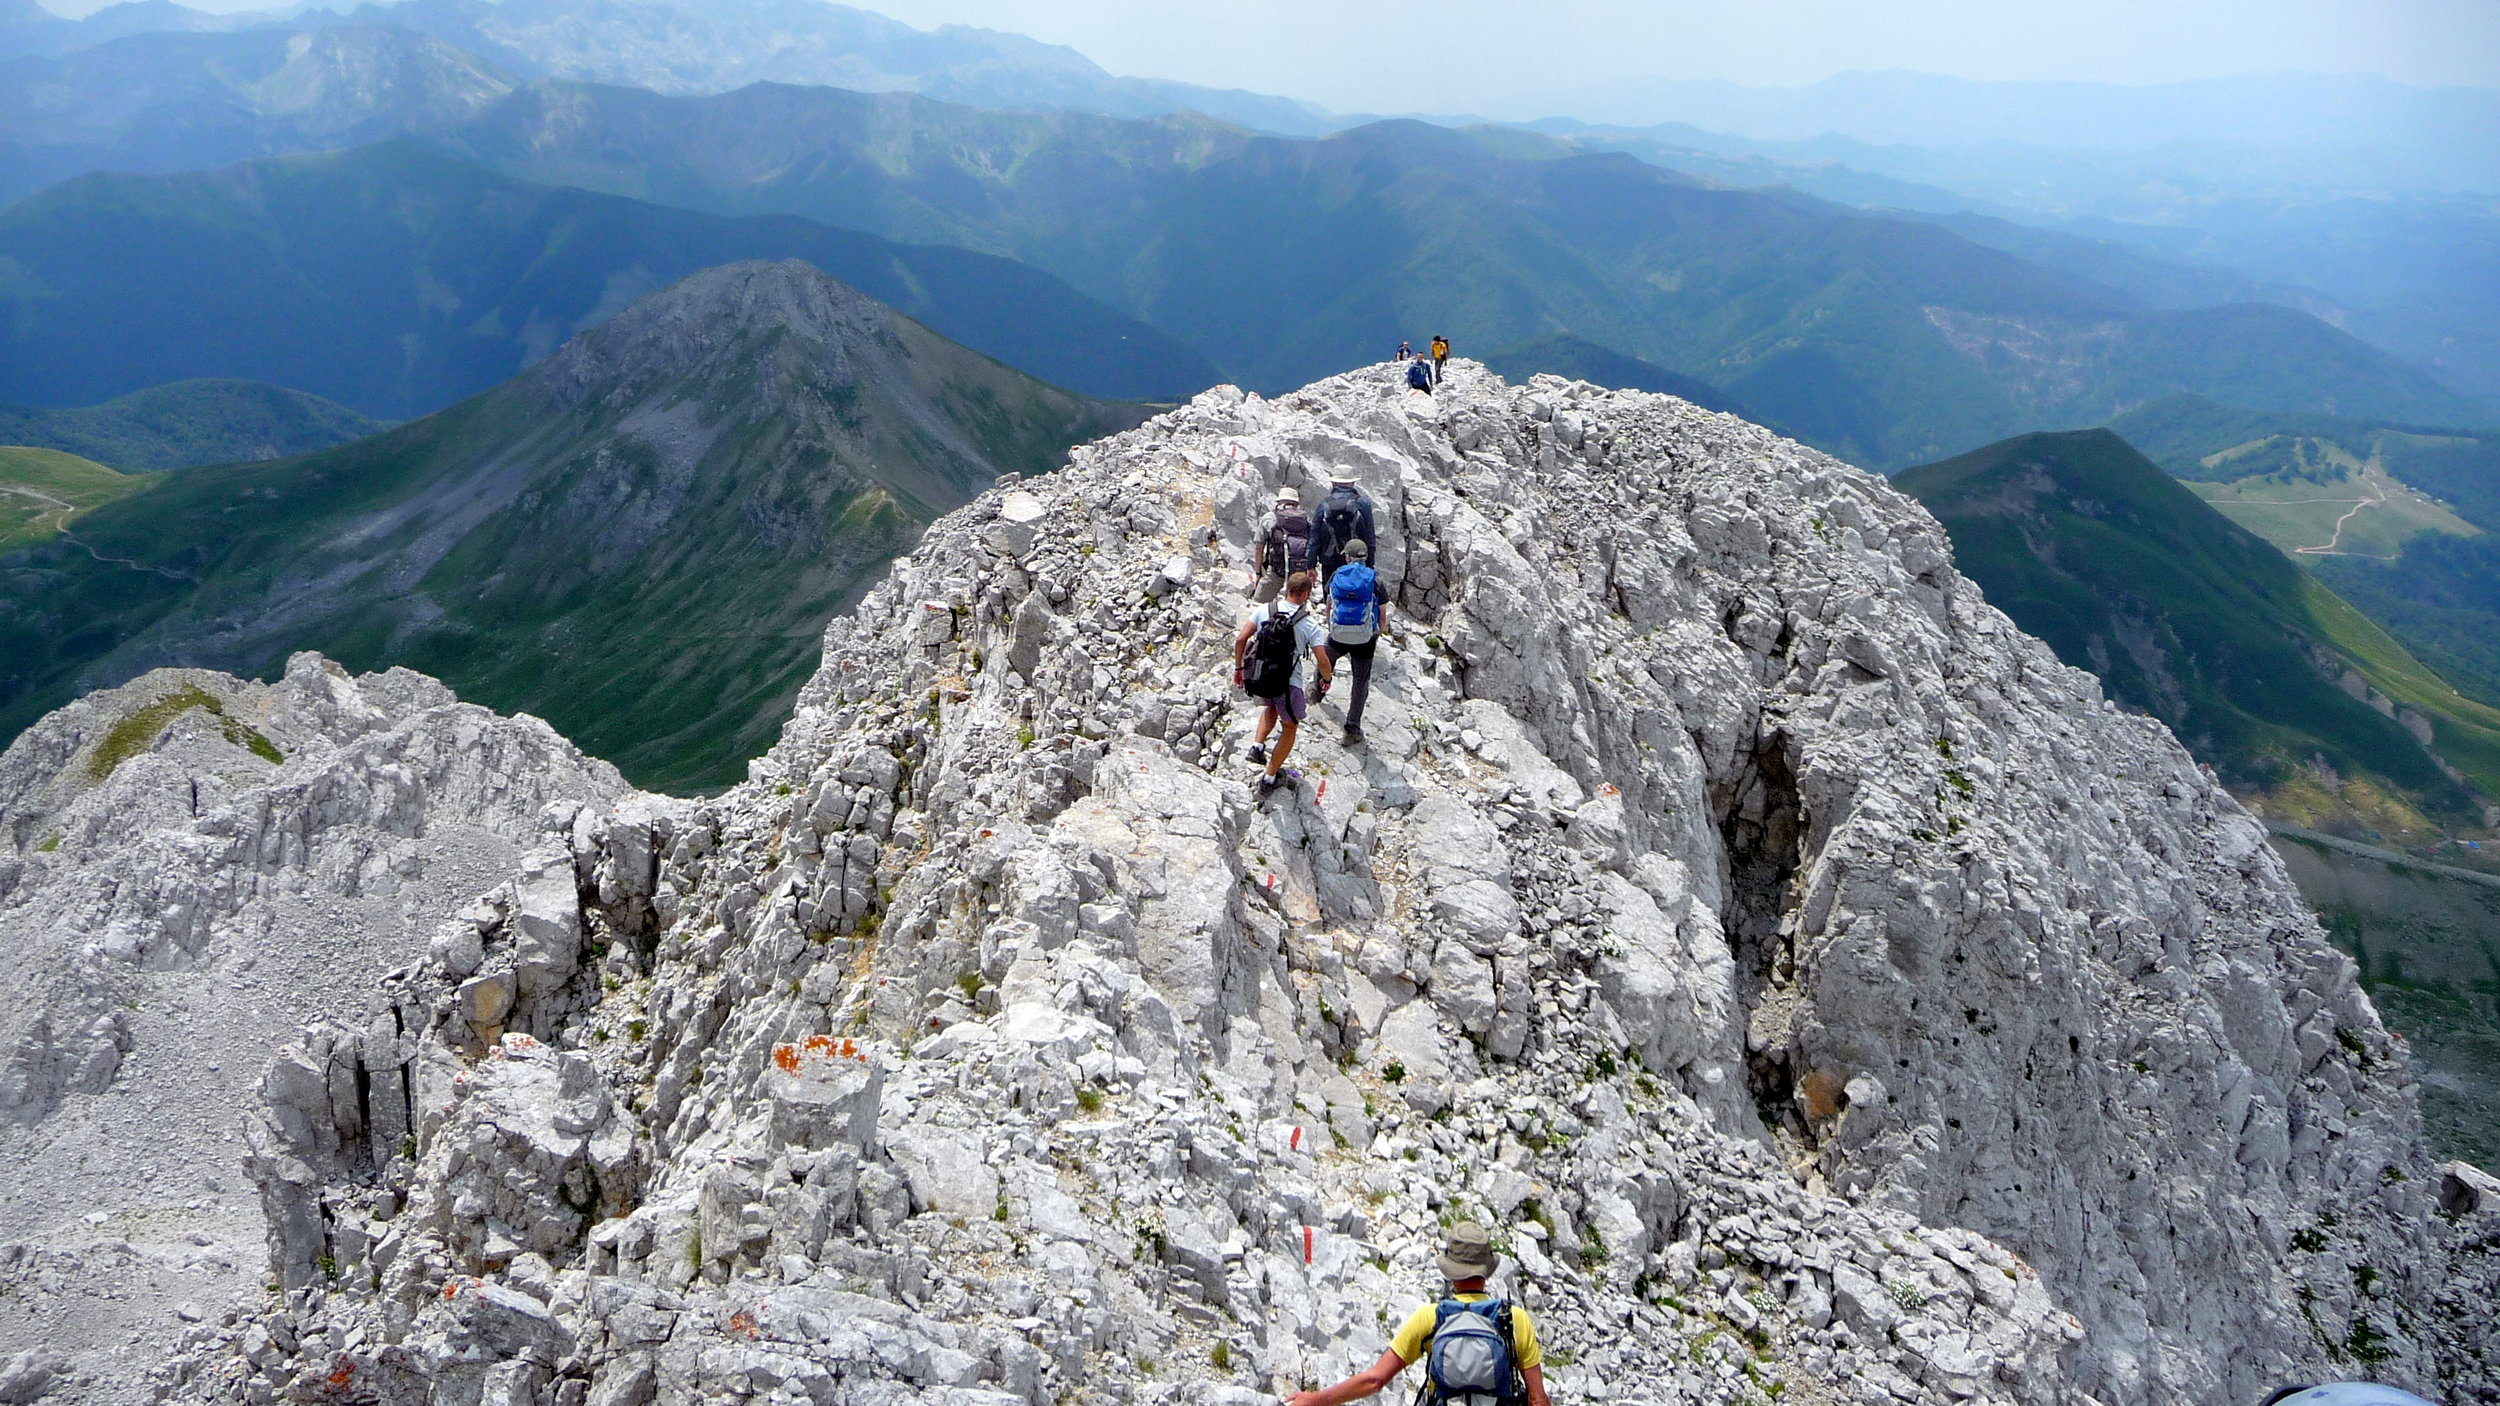 The Balkans - Travel between Montenegro and Albania through wild terrain and alpine meadows to the soaring summits of the Albanian Alps.Walking Grade: Grade 8